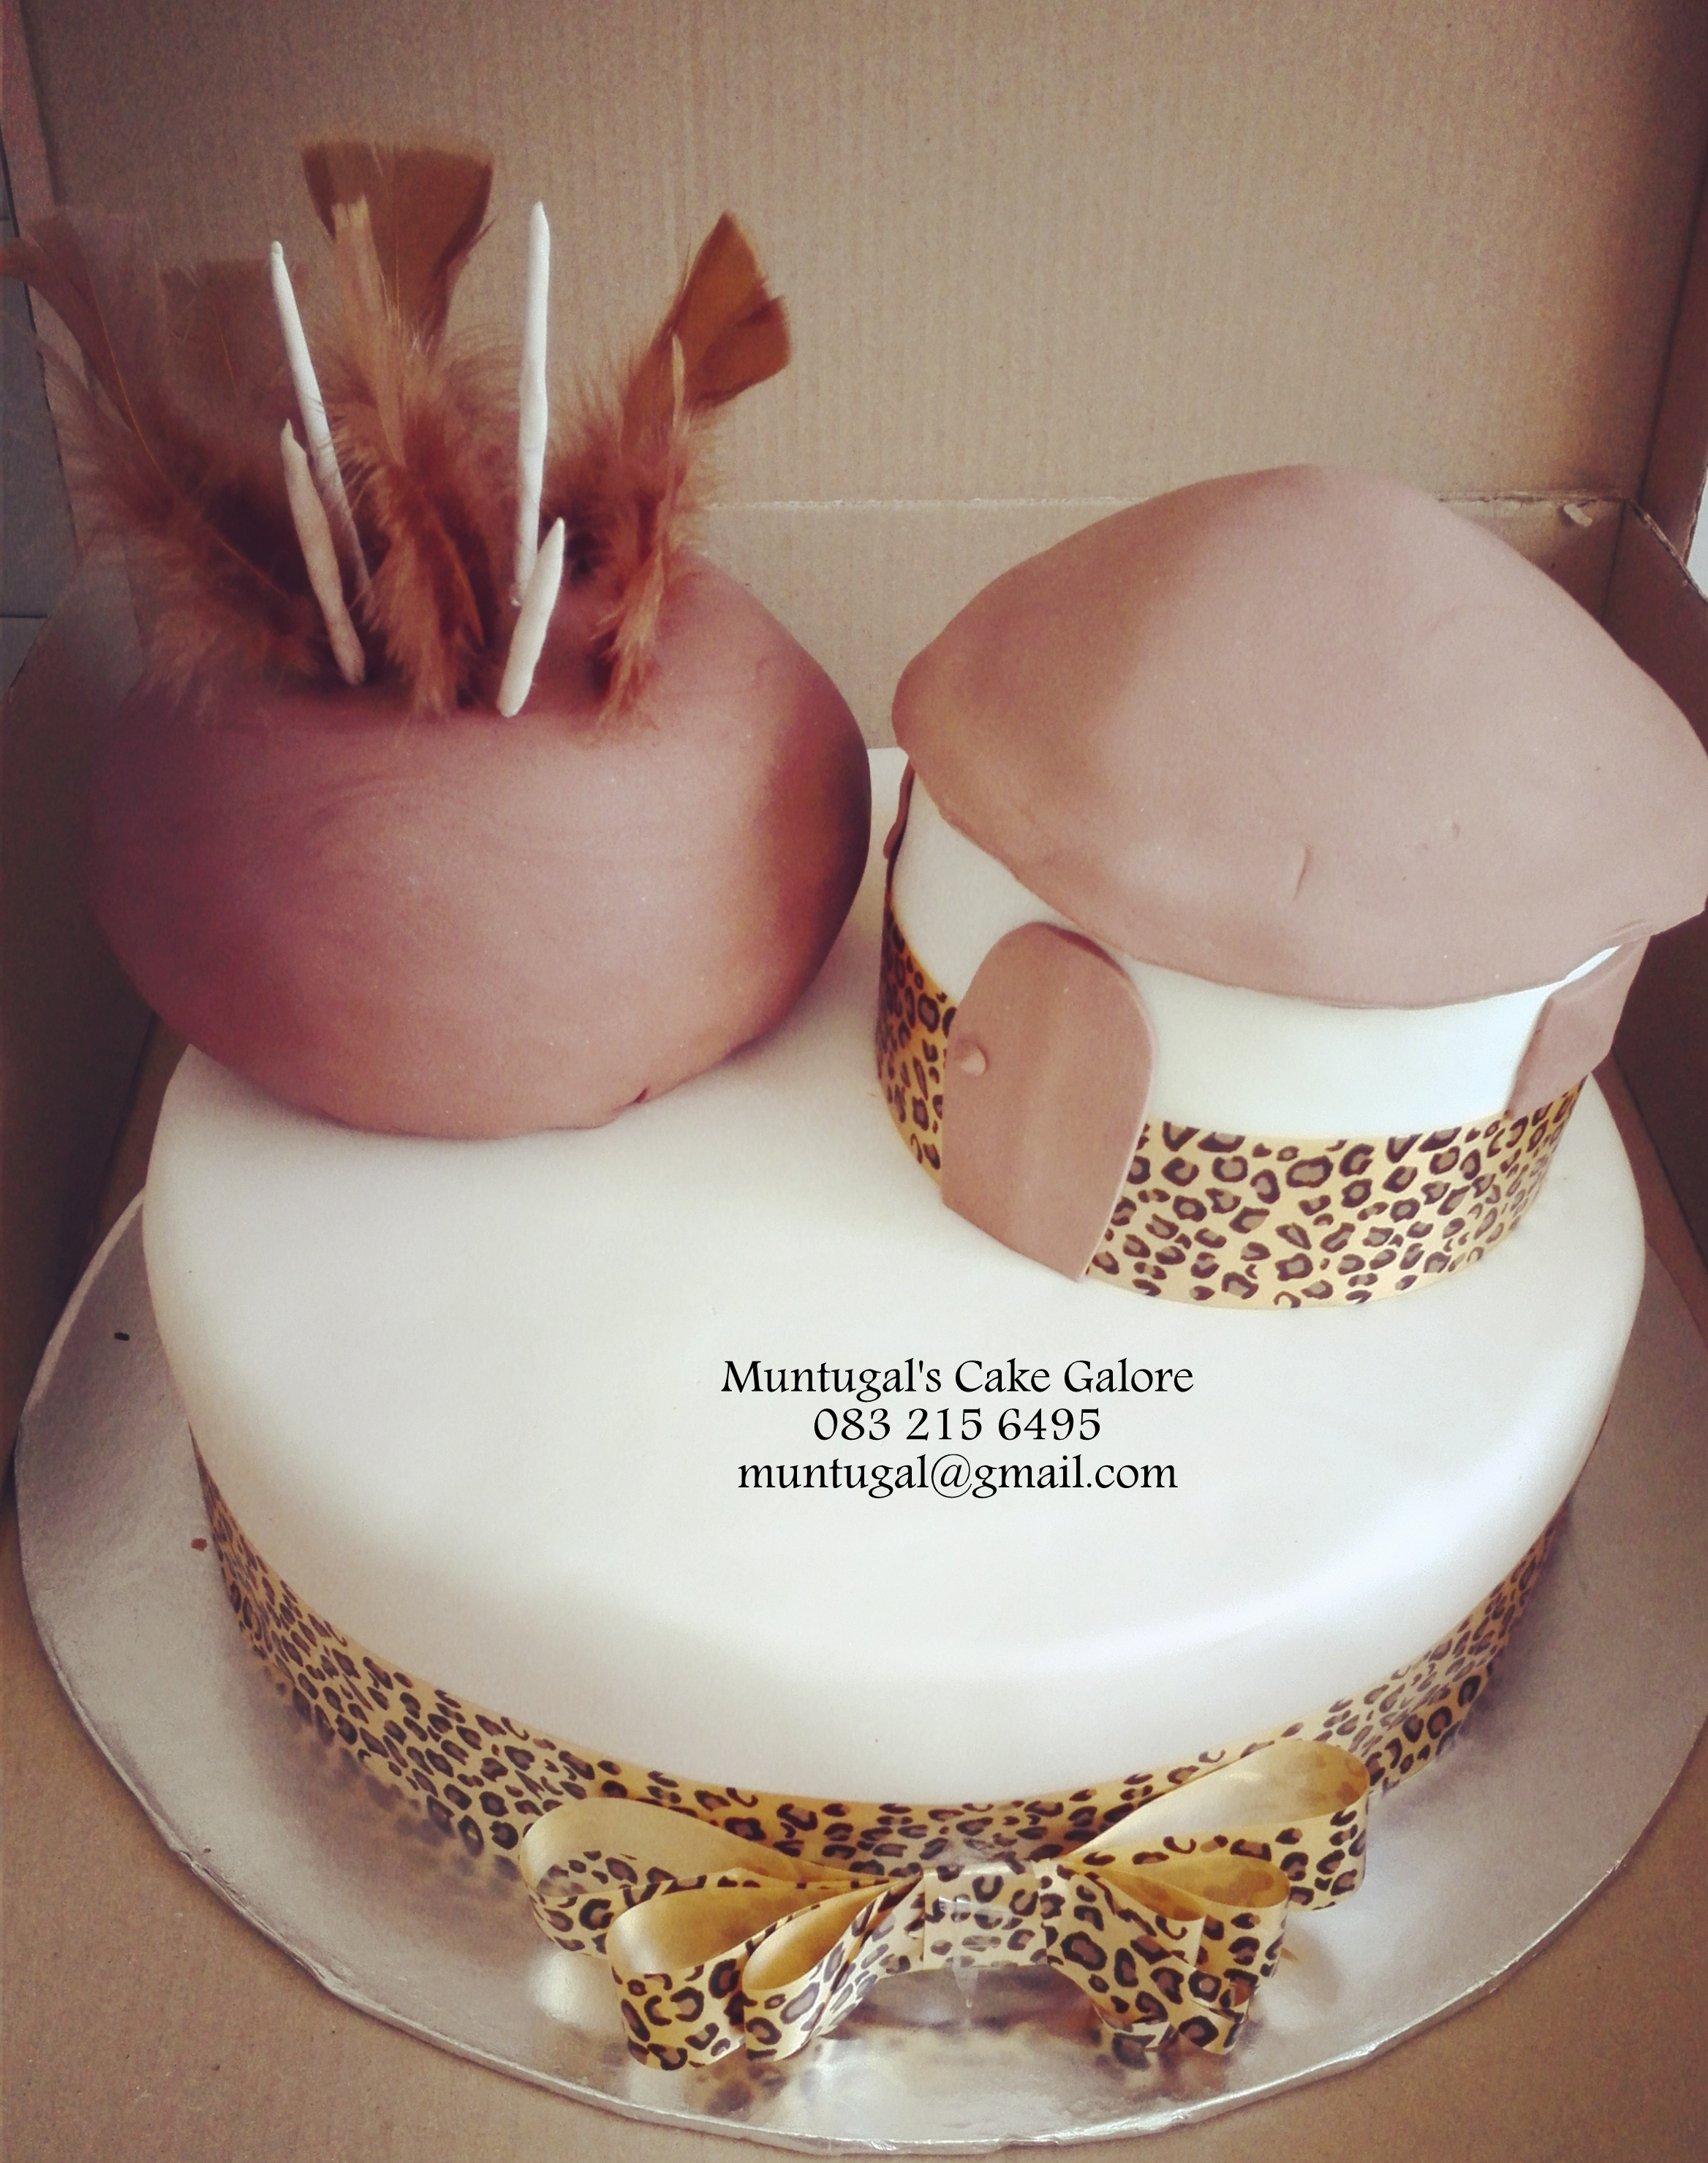 Muntugalscakegalore Wedding Cakes